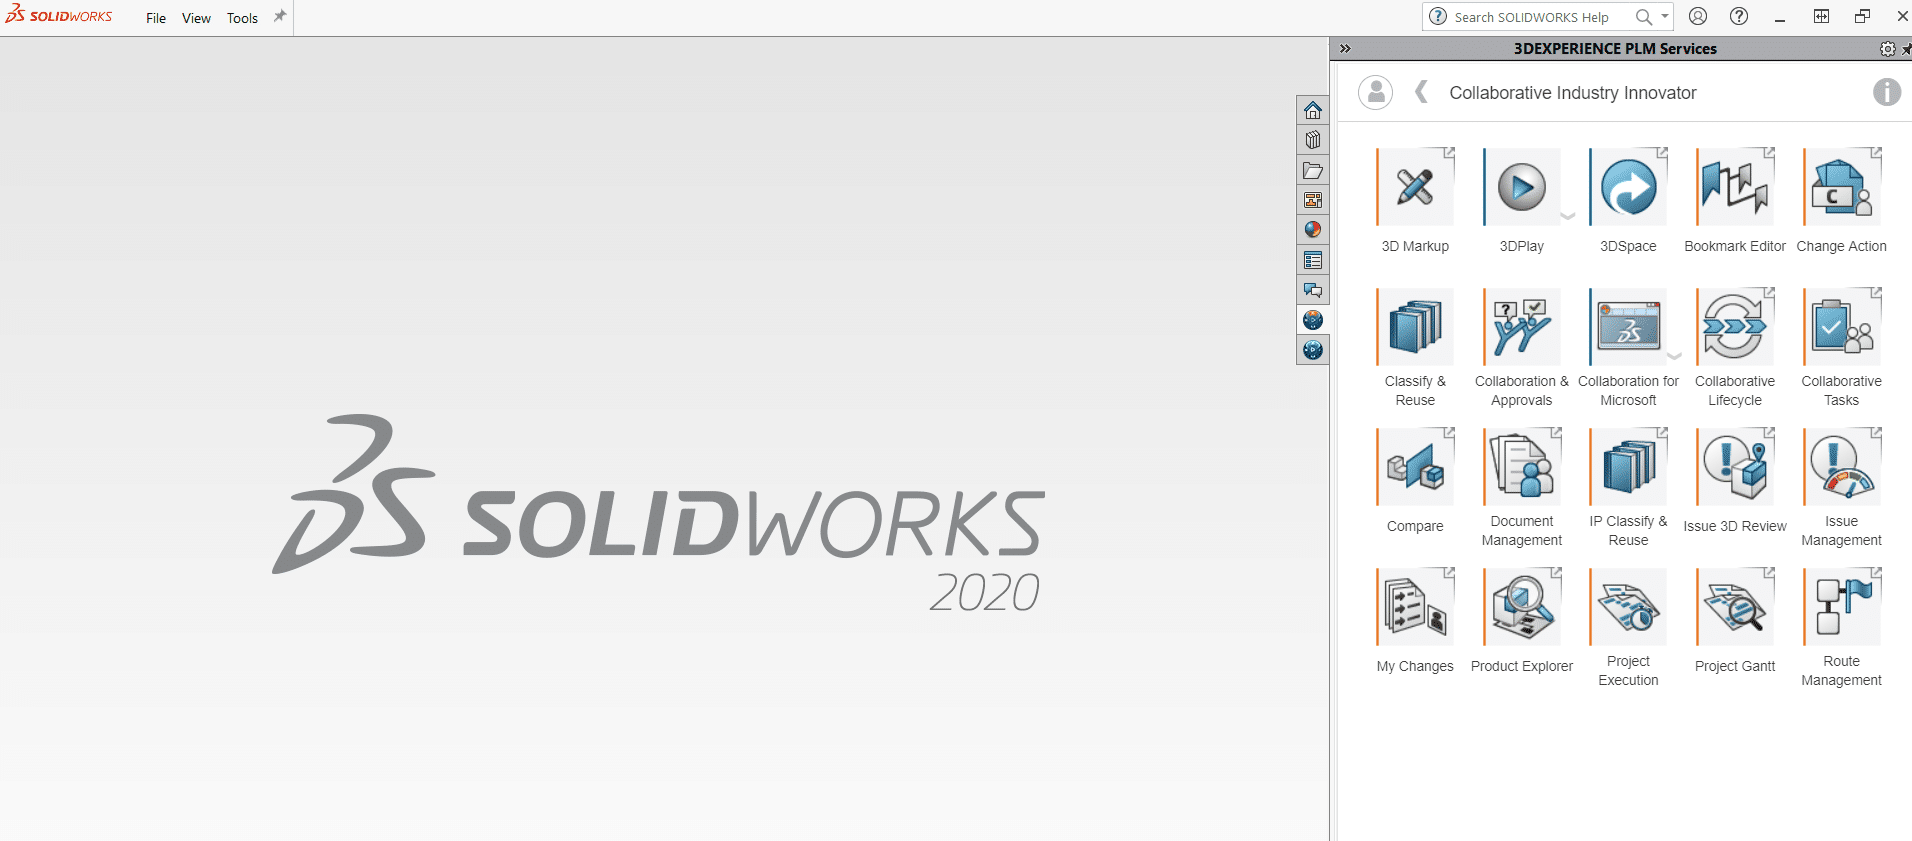 Collaborative Industry Innovator in SOLIDWORKS